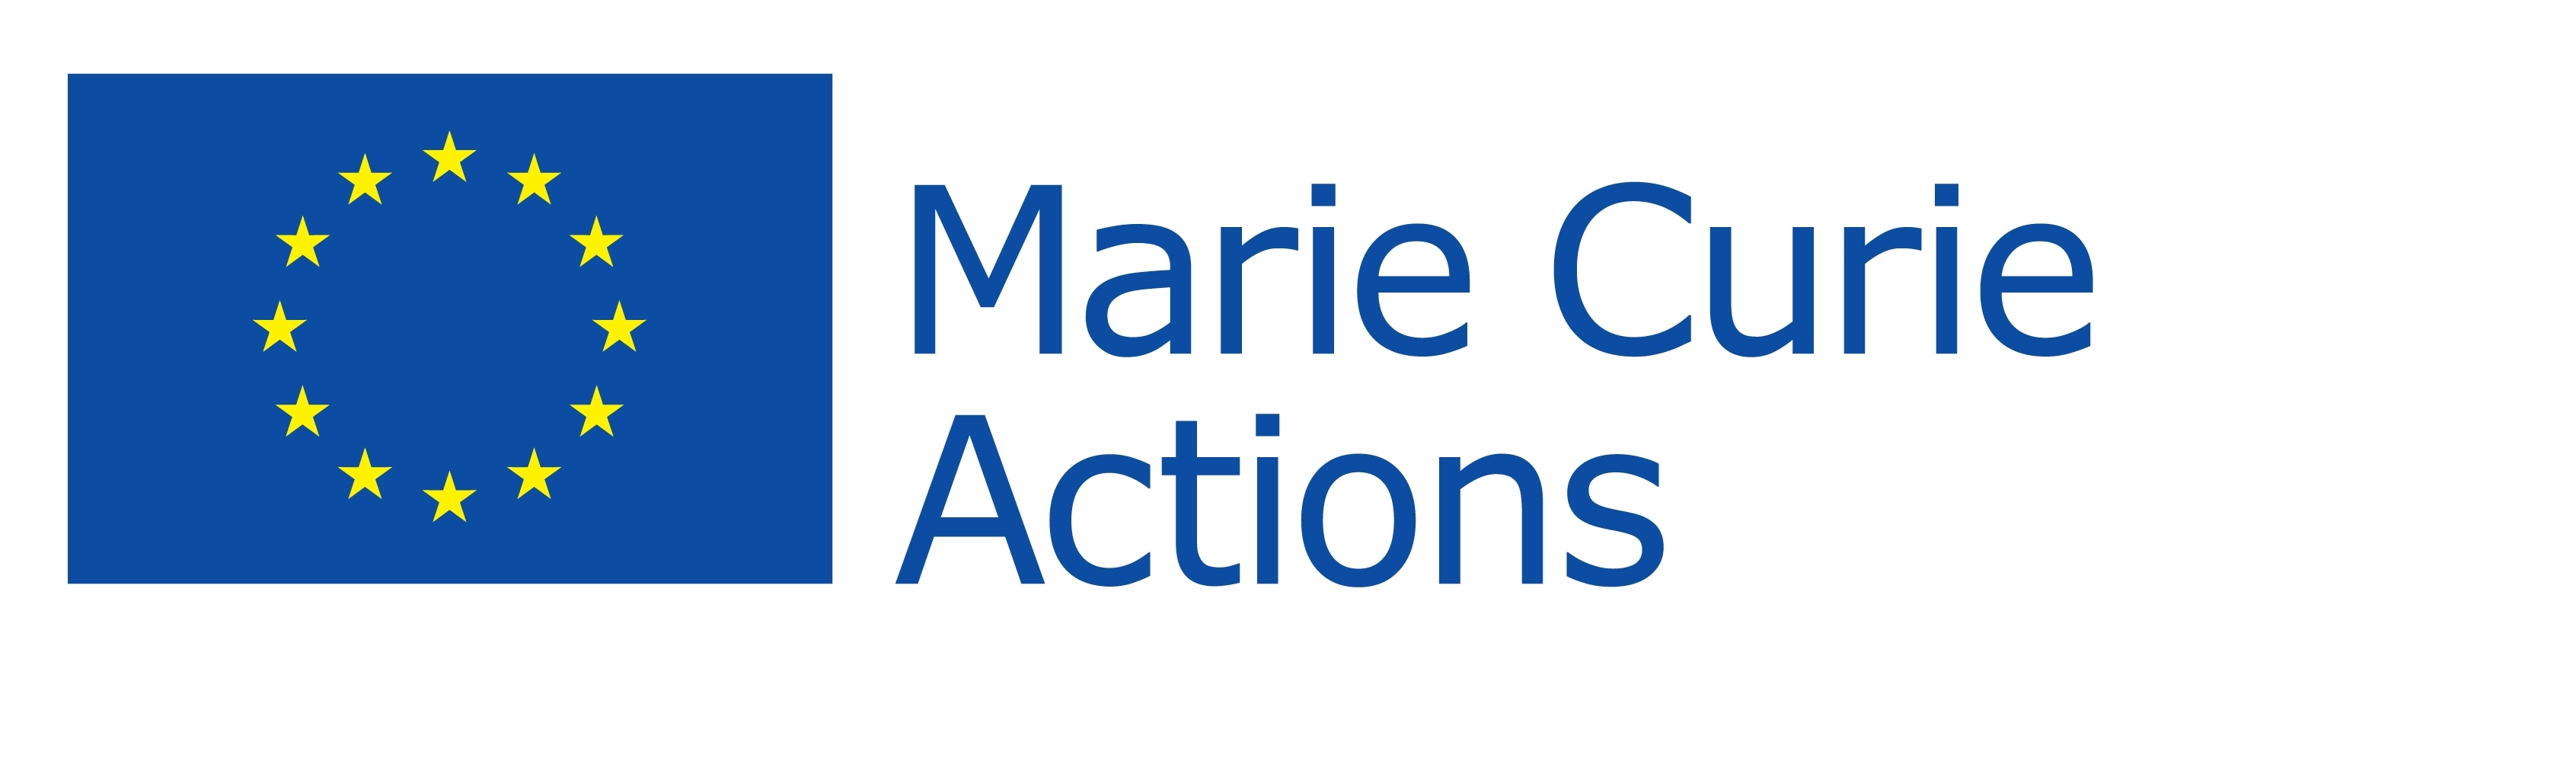 Curie_actions